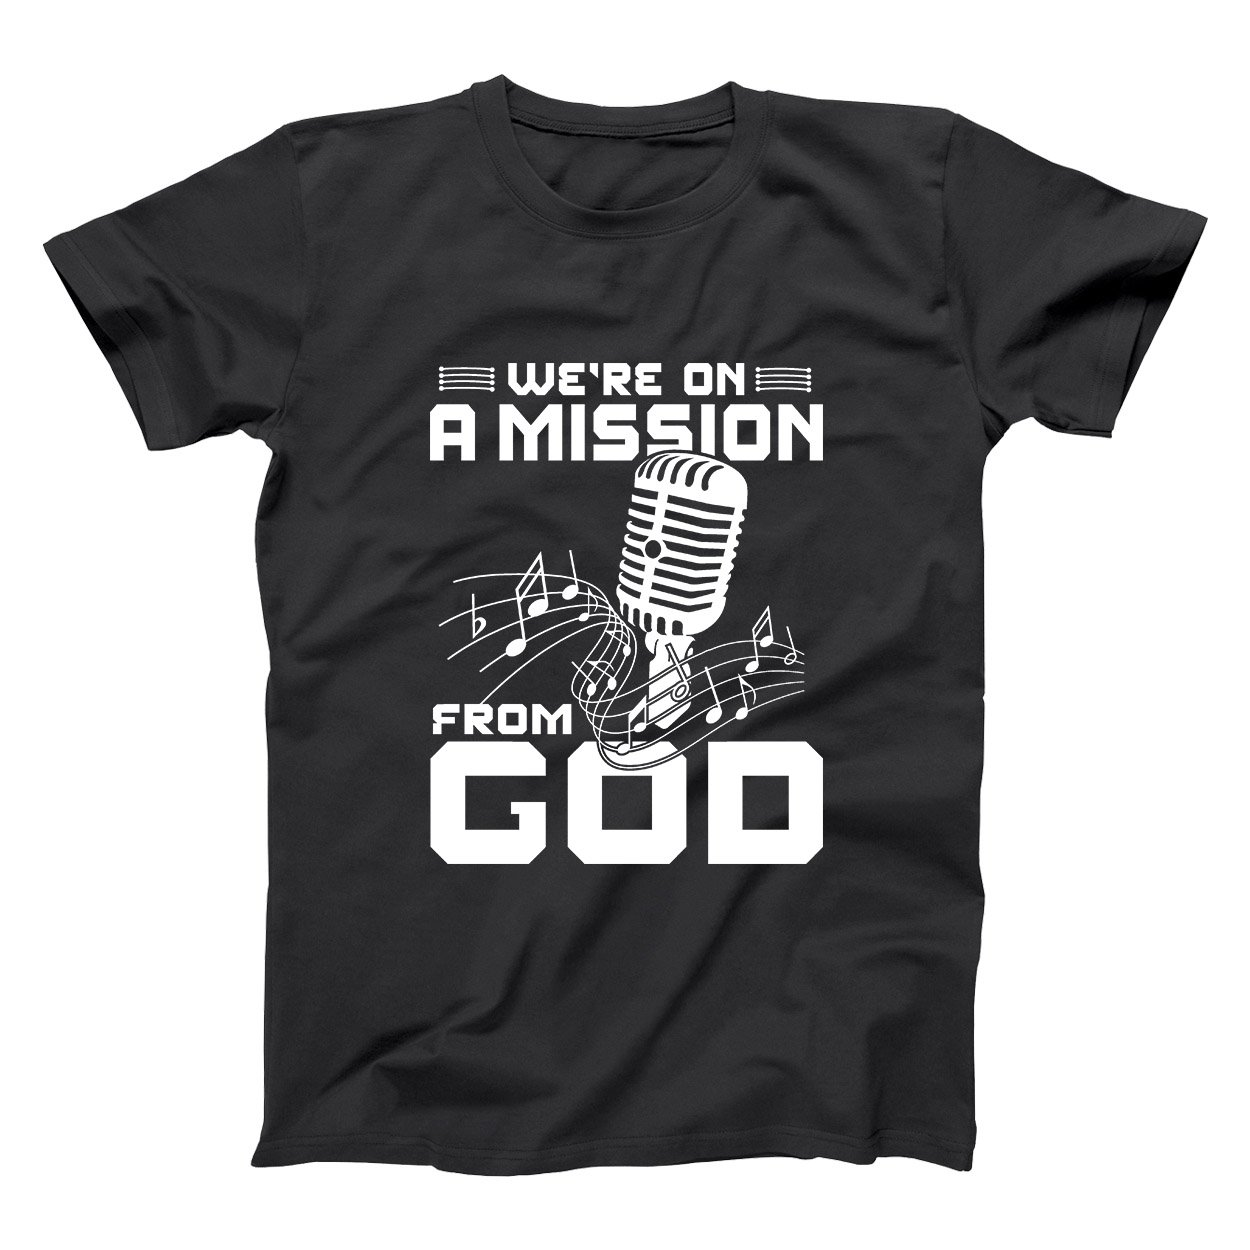 Were On A Mission From God Funny Blues Brothers Hilarious Movie 80s Humor S Shirt